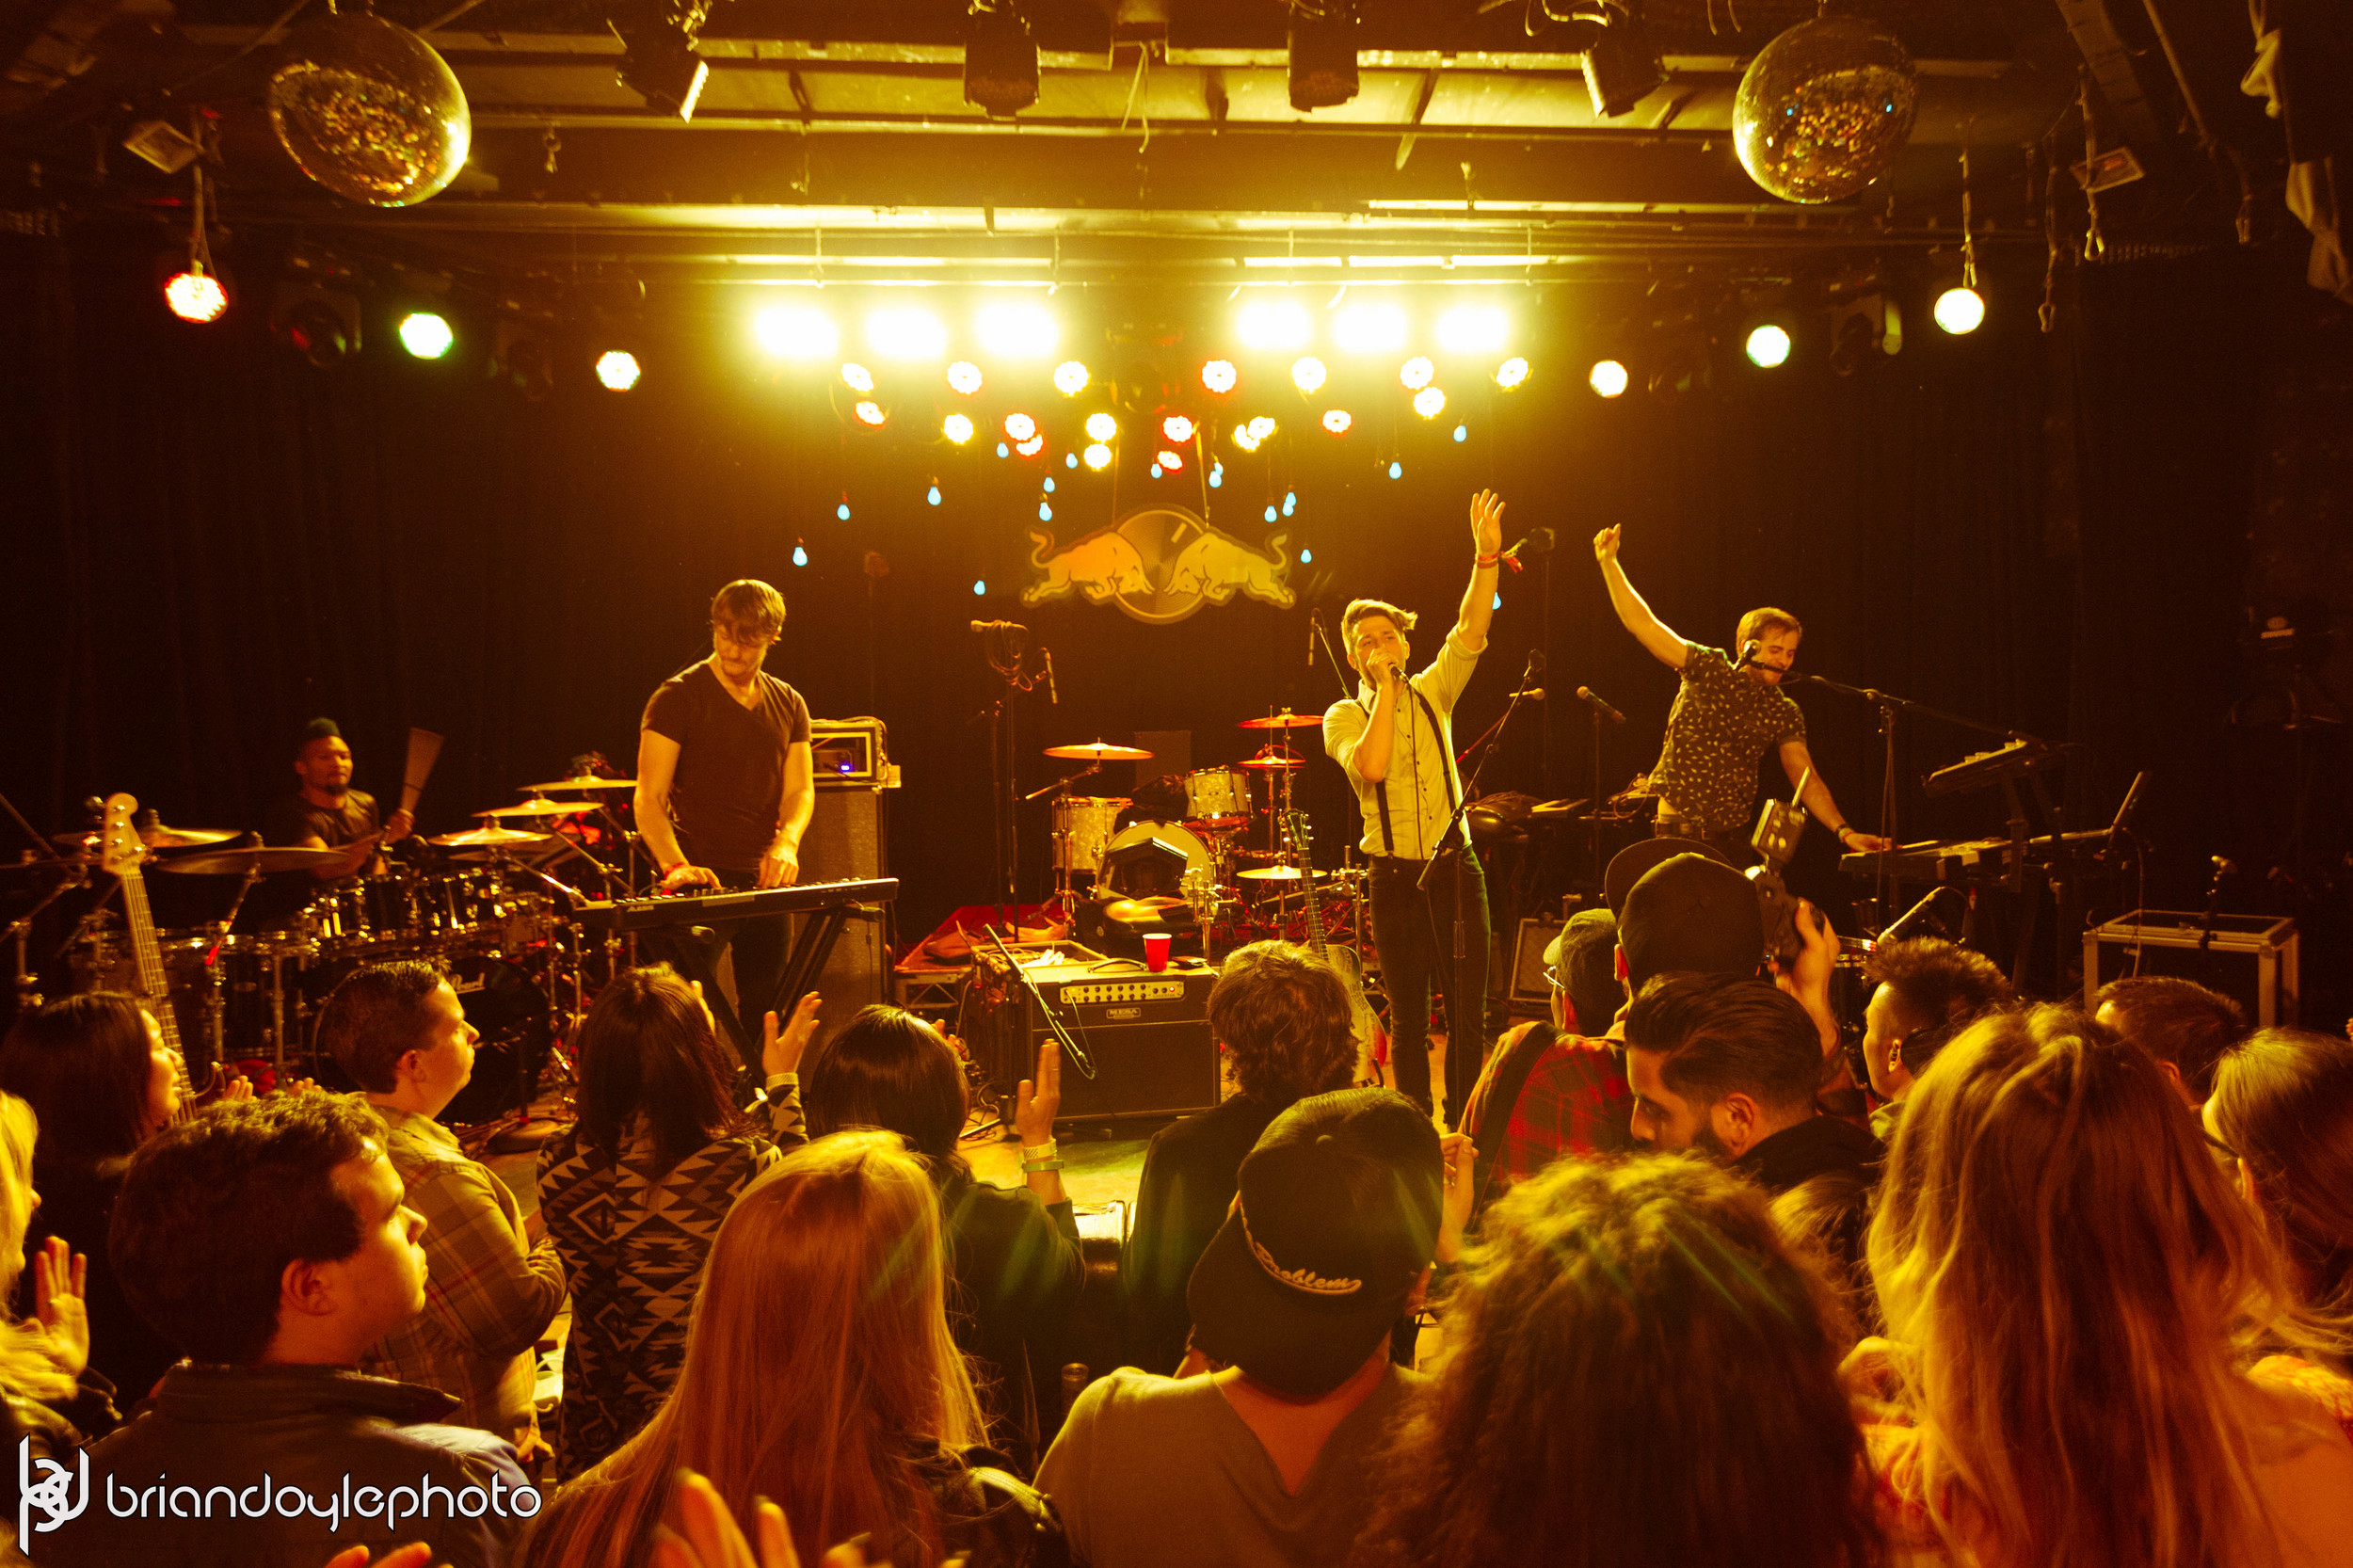 Red Bull - MS MR, Feathers, Electric Sons @ The Roxy 2014.11.02 -29.jpg